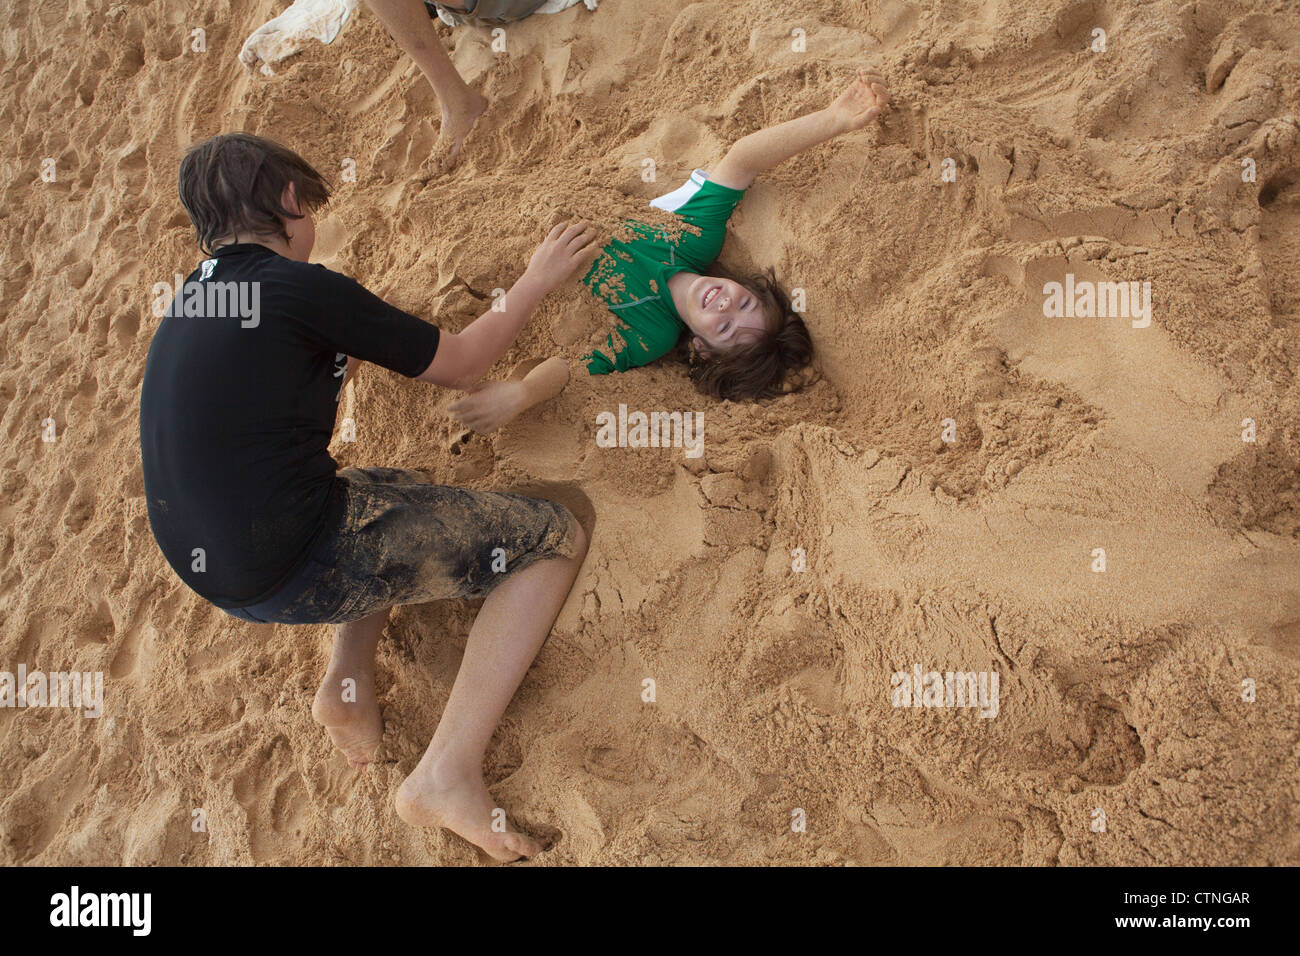 Older brother buries younger brother on a soft, sandy beach, Hawaii. - Stock Image